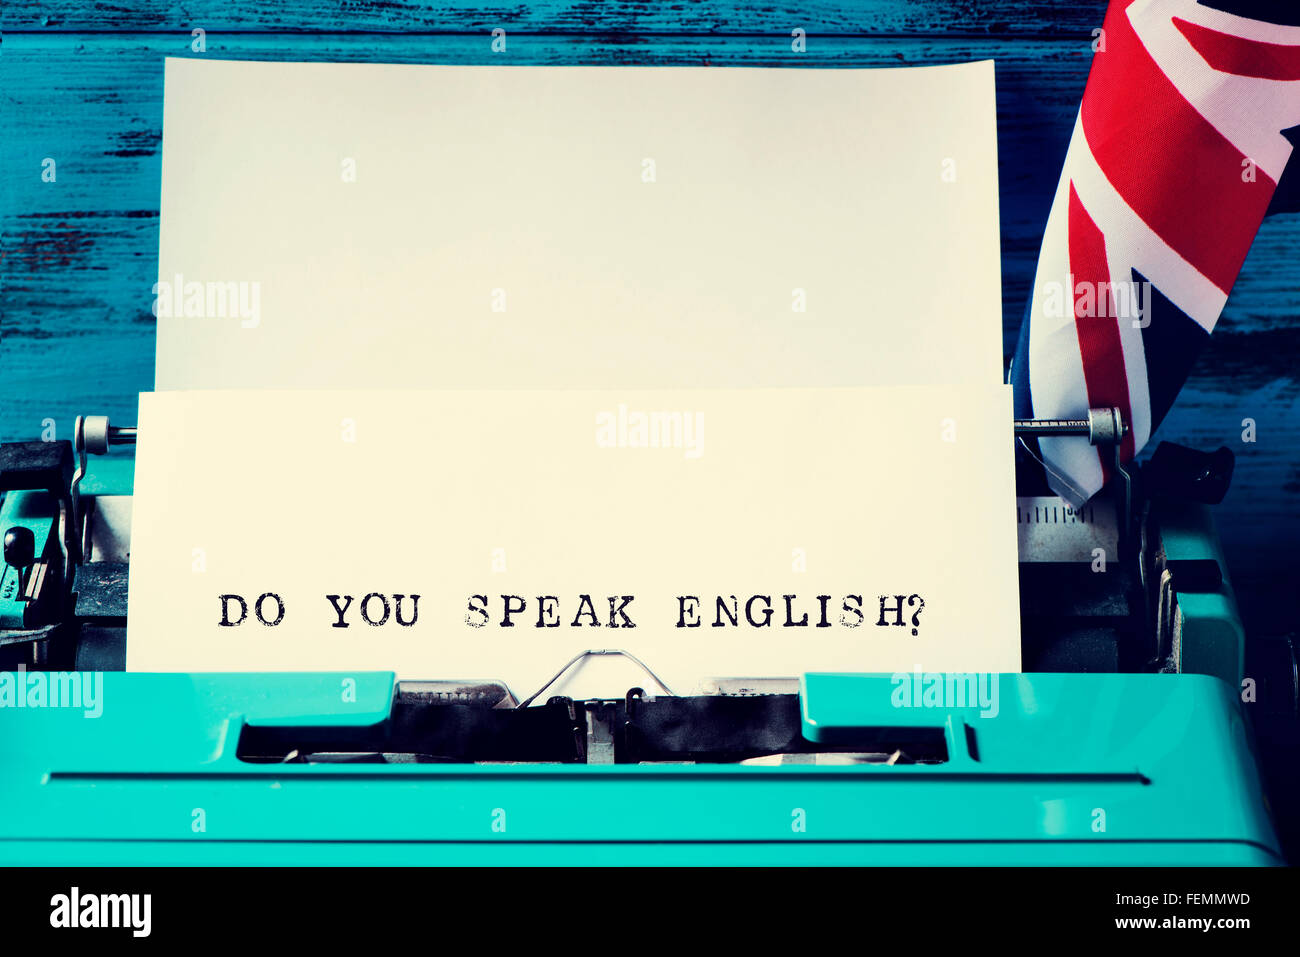 closeup of a paper in an old blue typewriter with the question do you speak english? typewritten in it, and the - Stock Image